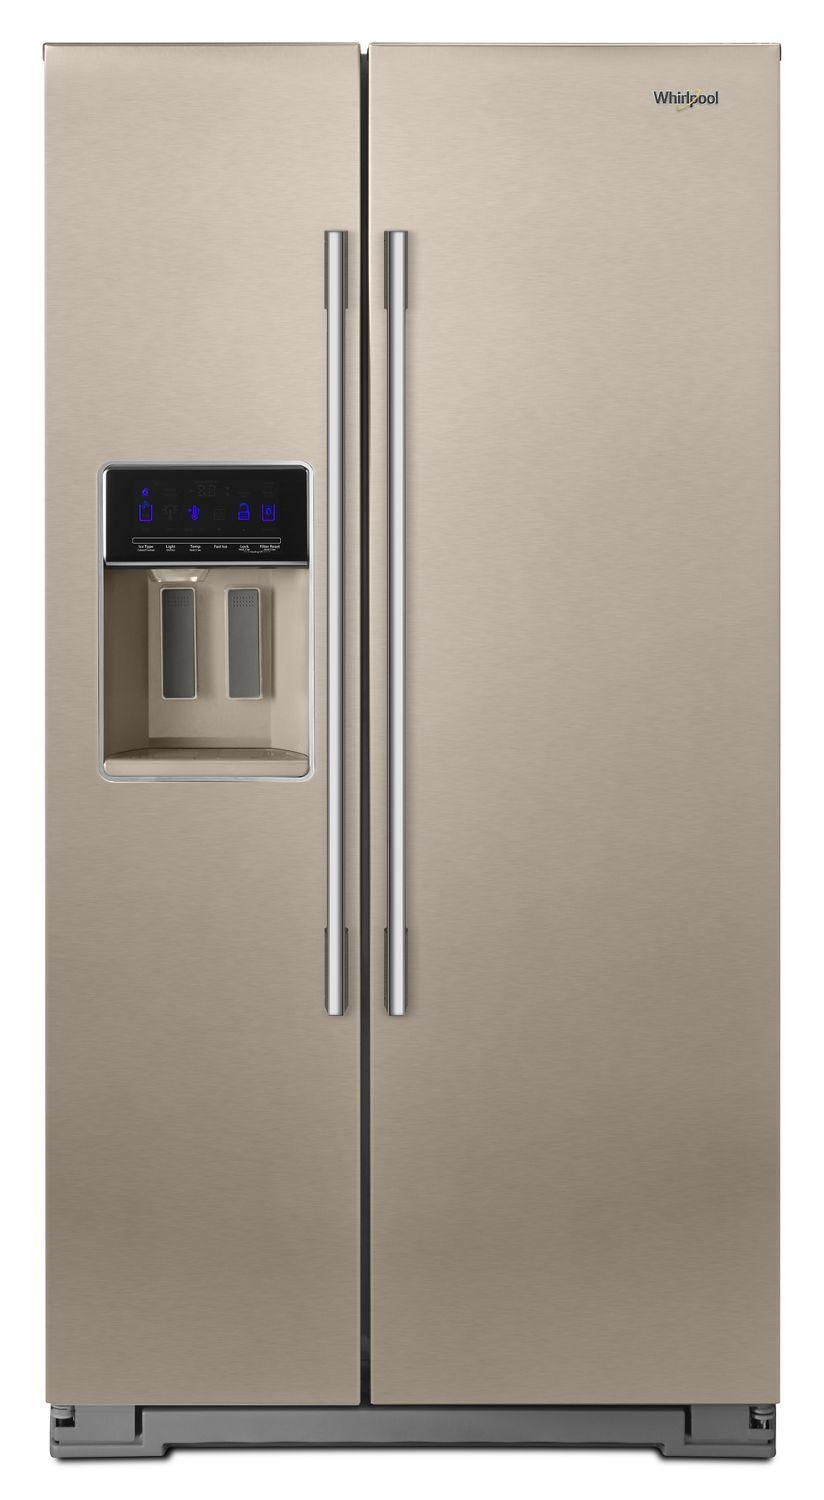 Whirlpool36-Inch Wide Contemporary Handle Counter Depth Side-By-Side Refrigerator - 21 Cu. Ft. Fingerprint Resistant Sunset Bronze